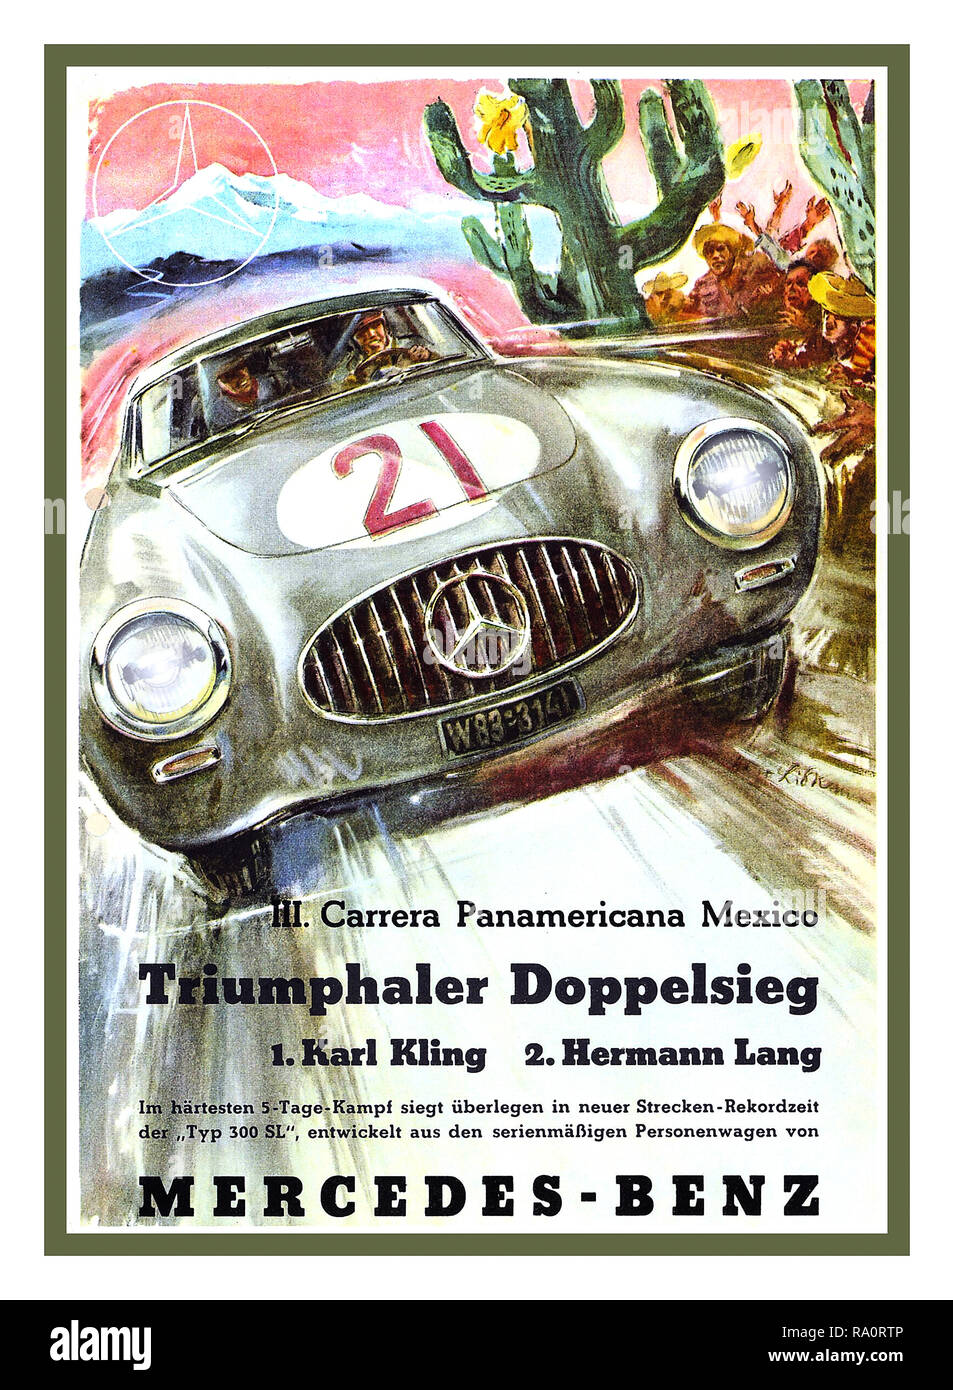 Vintage Motor Racing Poster 'TRIUMPHALER DOPPELSIEG' 1952 Carrera Panamericana Mexico with Karl Kling in First Place and Hermann Lang in Second Place both driving renowned Mercedes 300 SL Sports Cars W124  A double victory for the highly organised Mercedes Sports Team - Stock Image